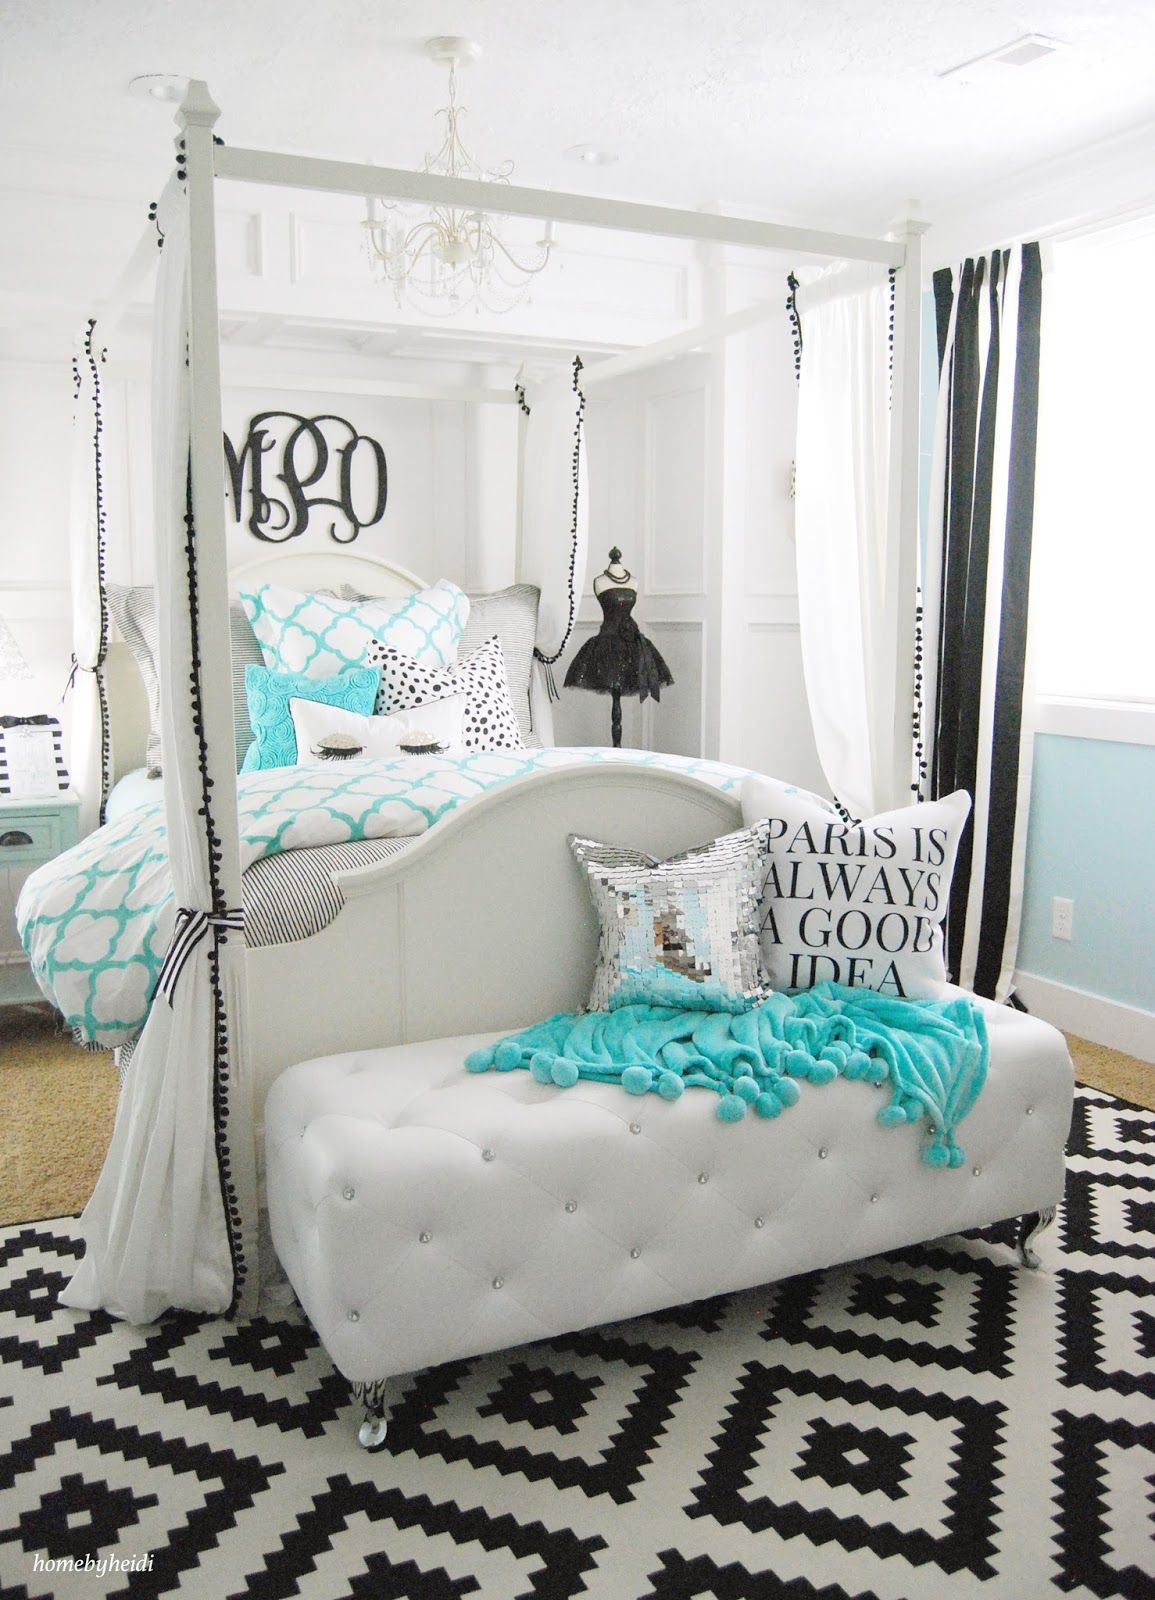 Bedroom Ideas For Teenage Girls Blue tiffany inspired bedroom | bedroom ideas | pinterest | tiffany